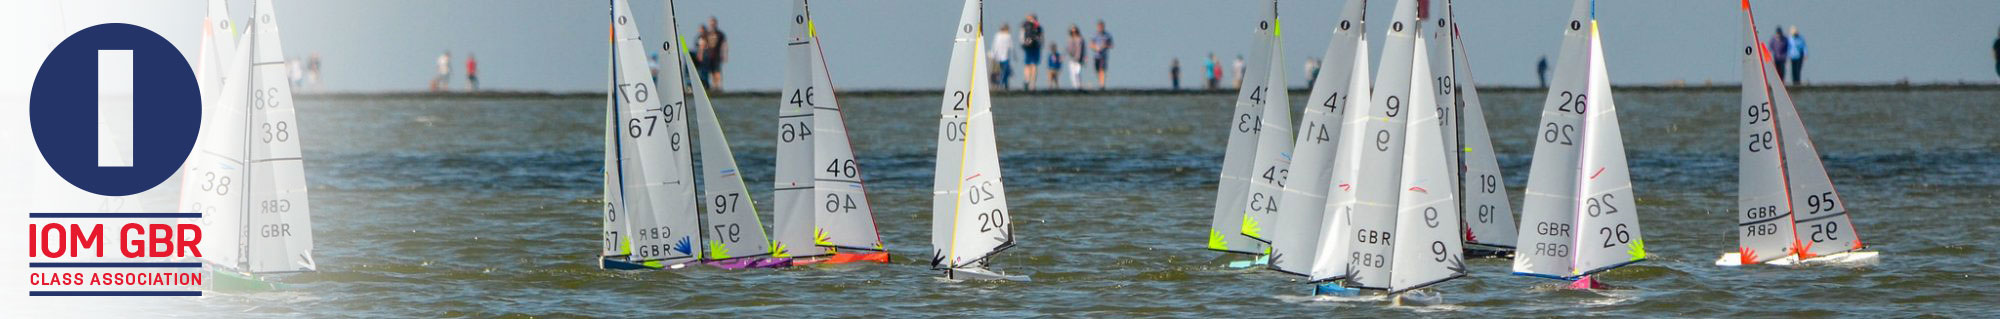 IOM GBR – International One Metre Class has moved to:               https://www.iomgbr.co.uk/